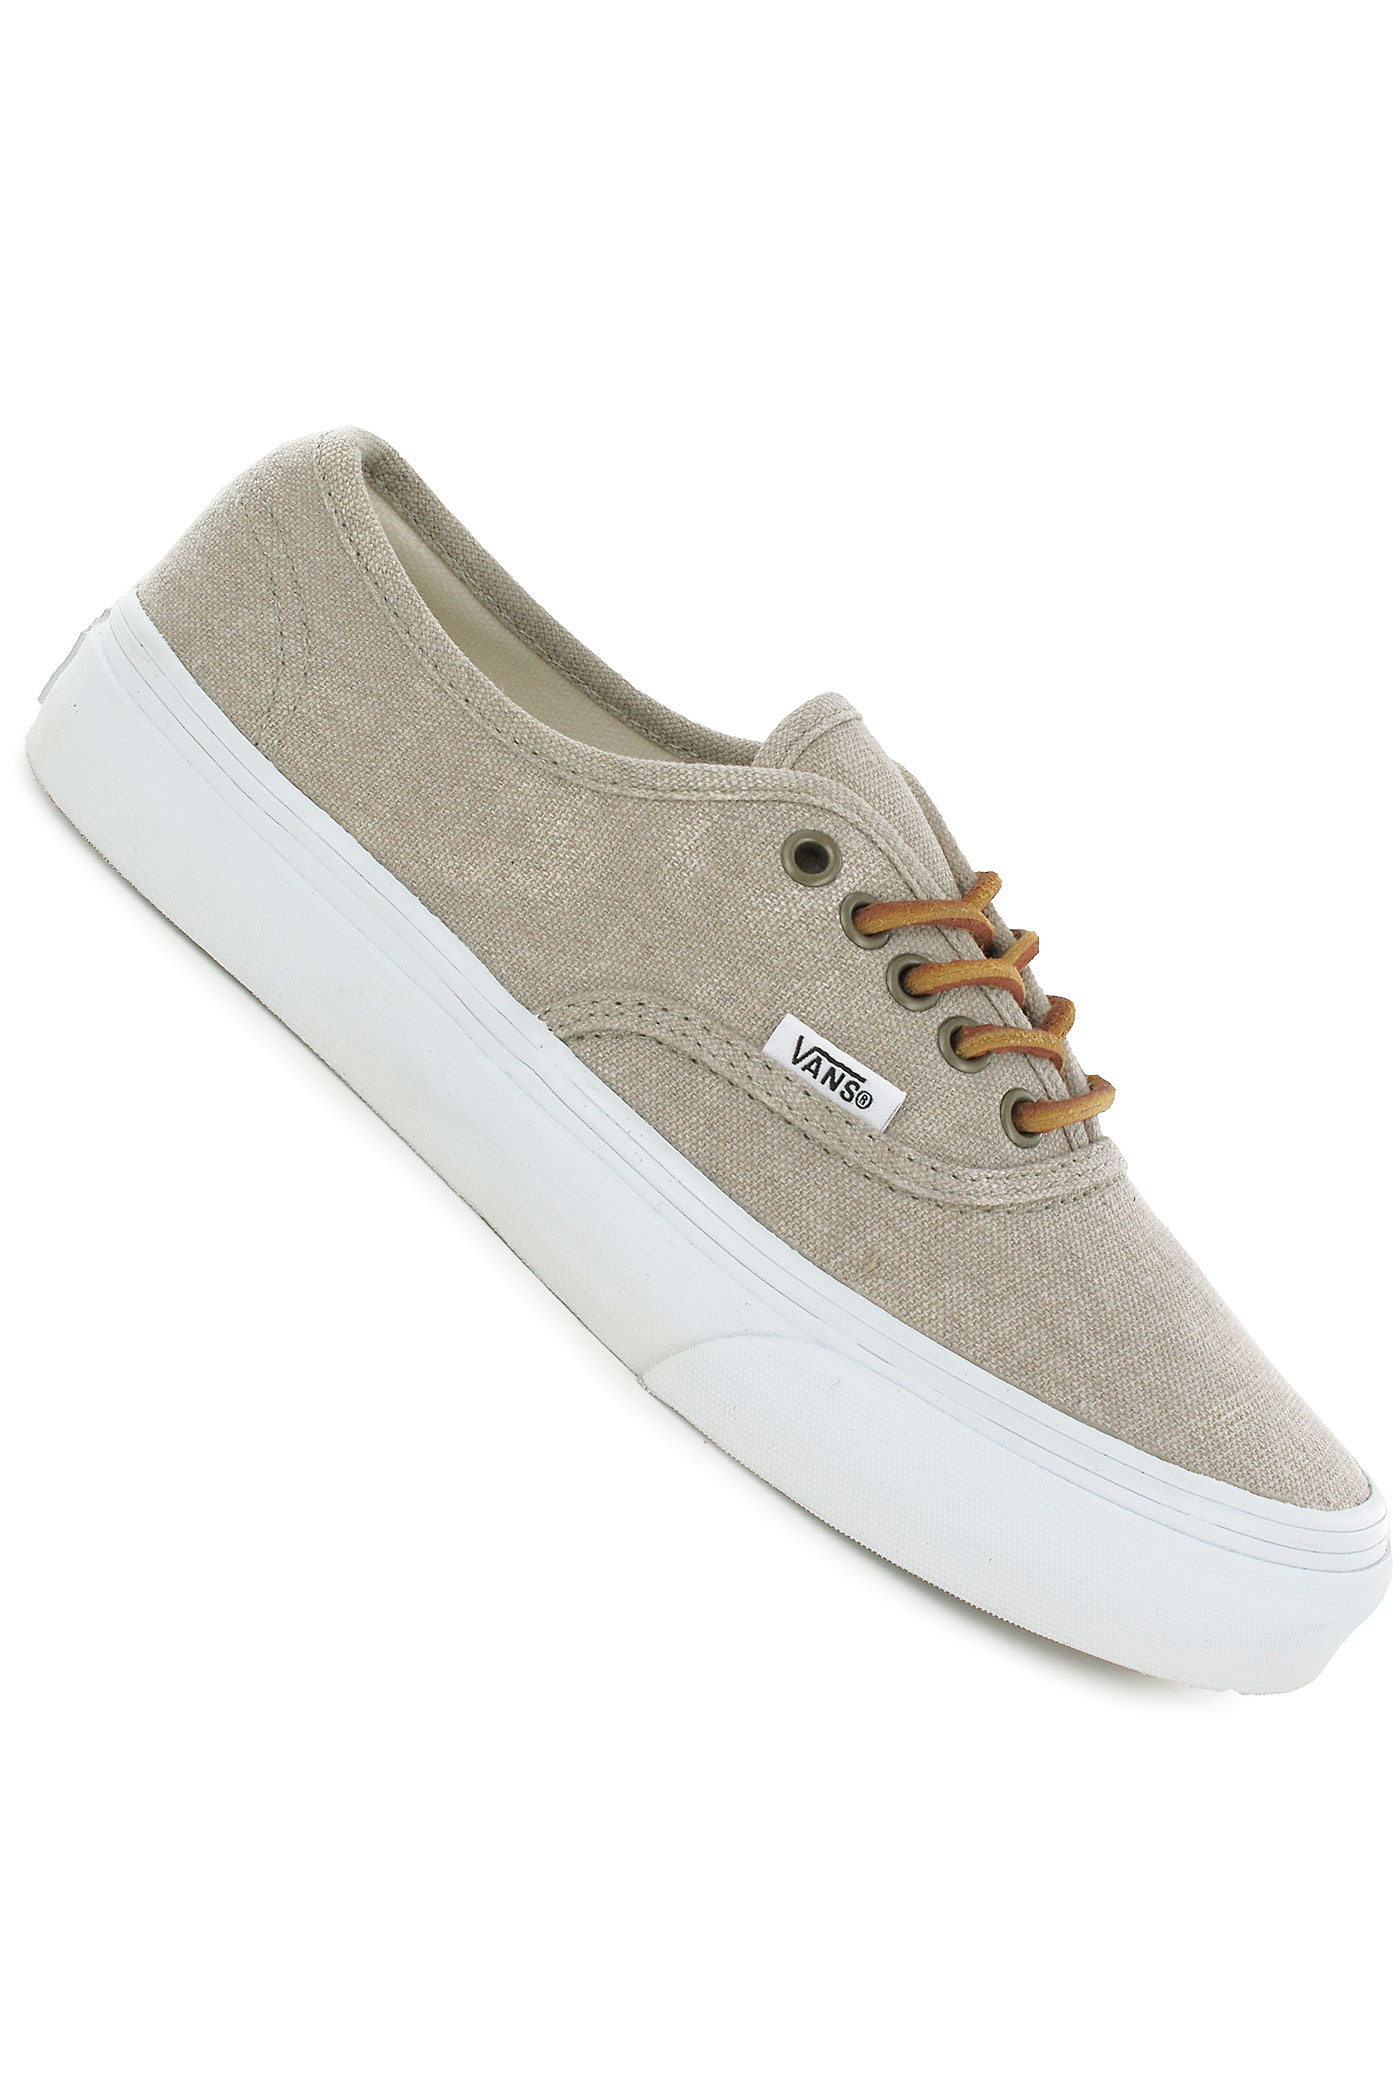 Vans Ladies Shoes India